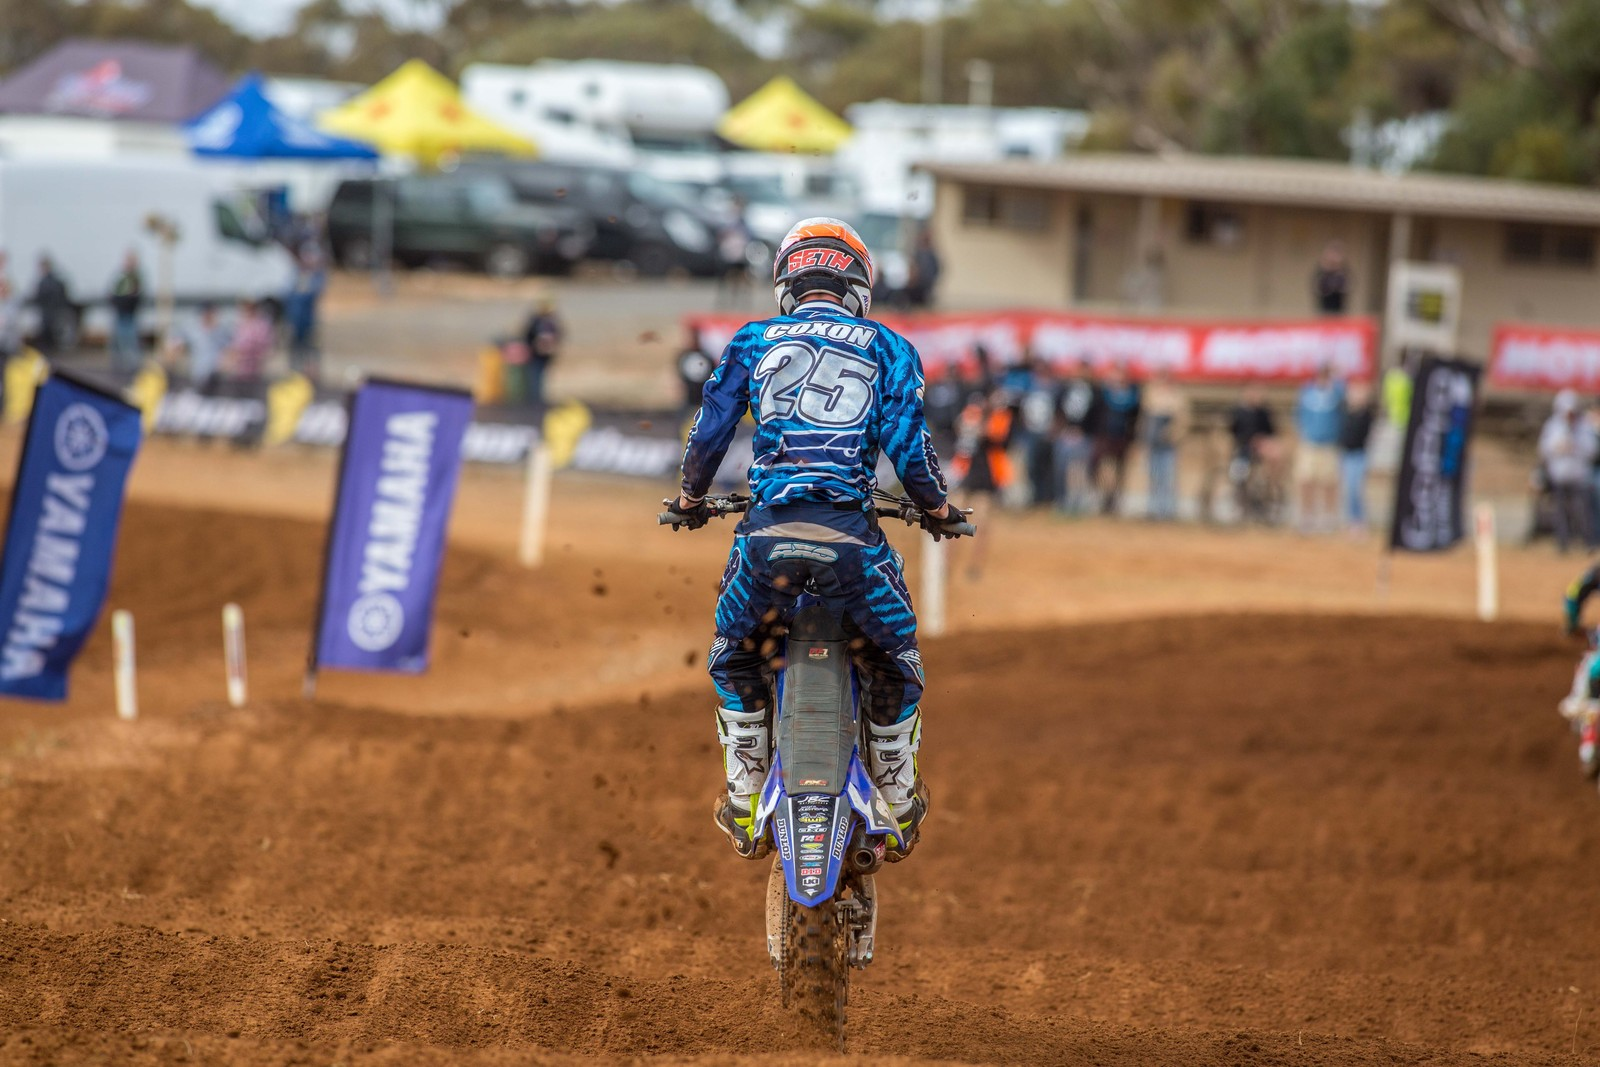 Bailey Coxon - Australian Motul Mx Championships: Round 4, Murray Bridge - Motocross Pictures - Vital MX